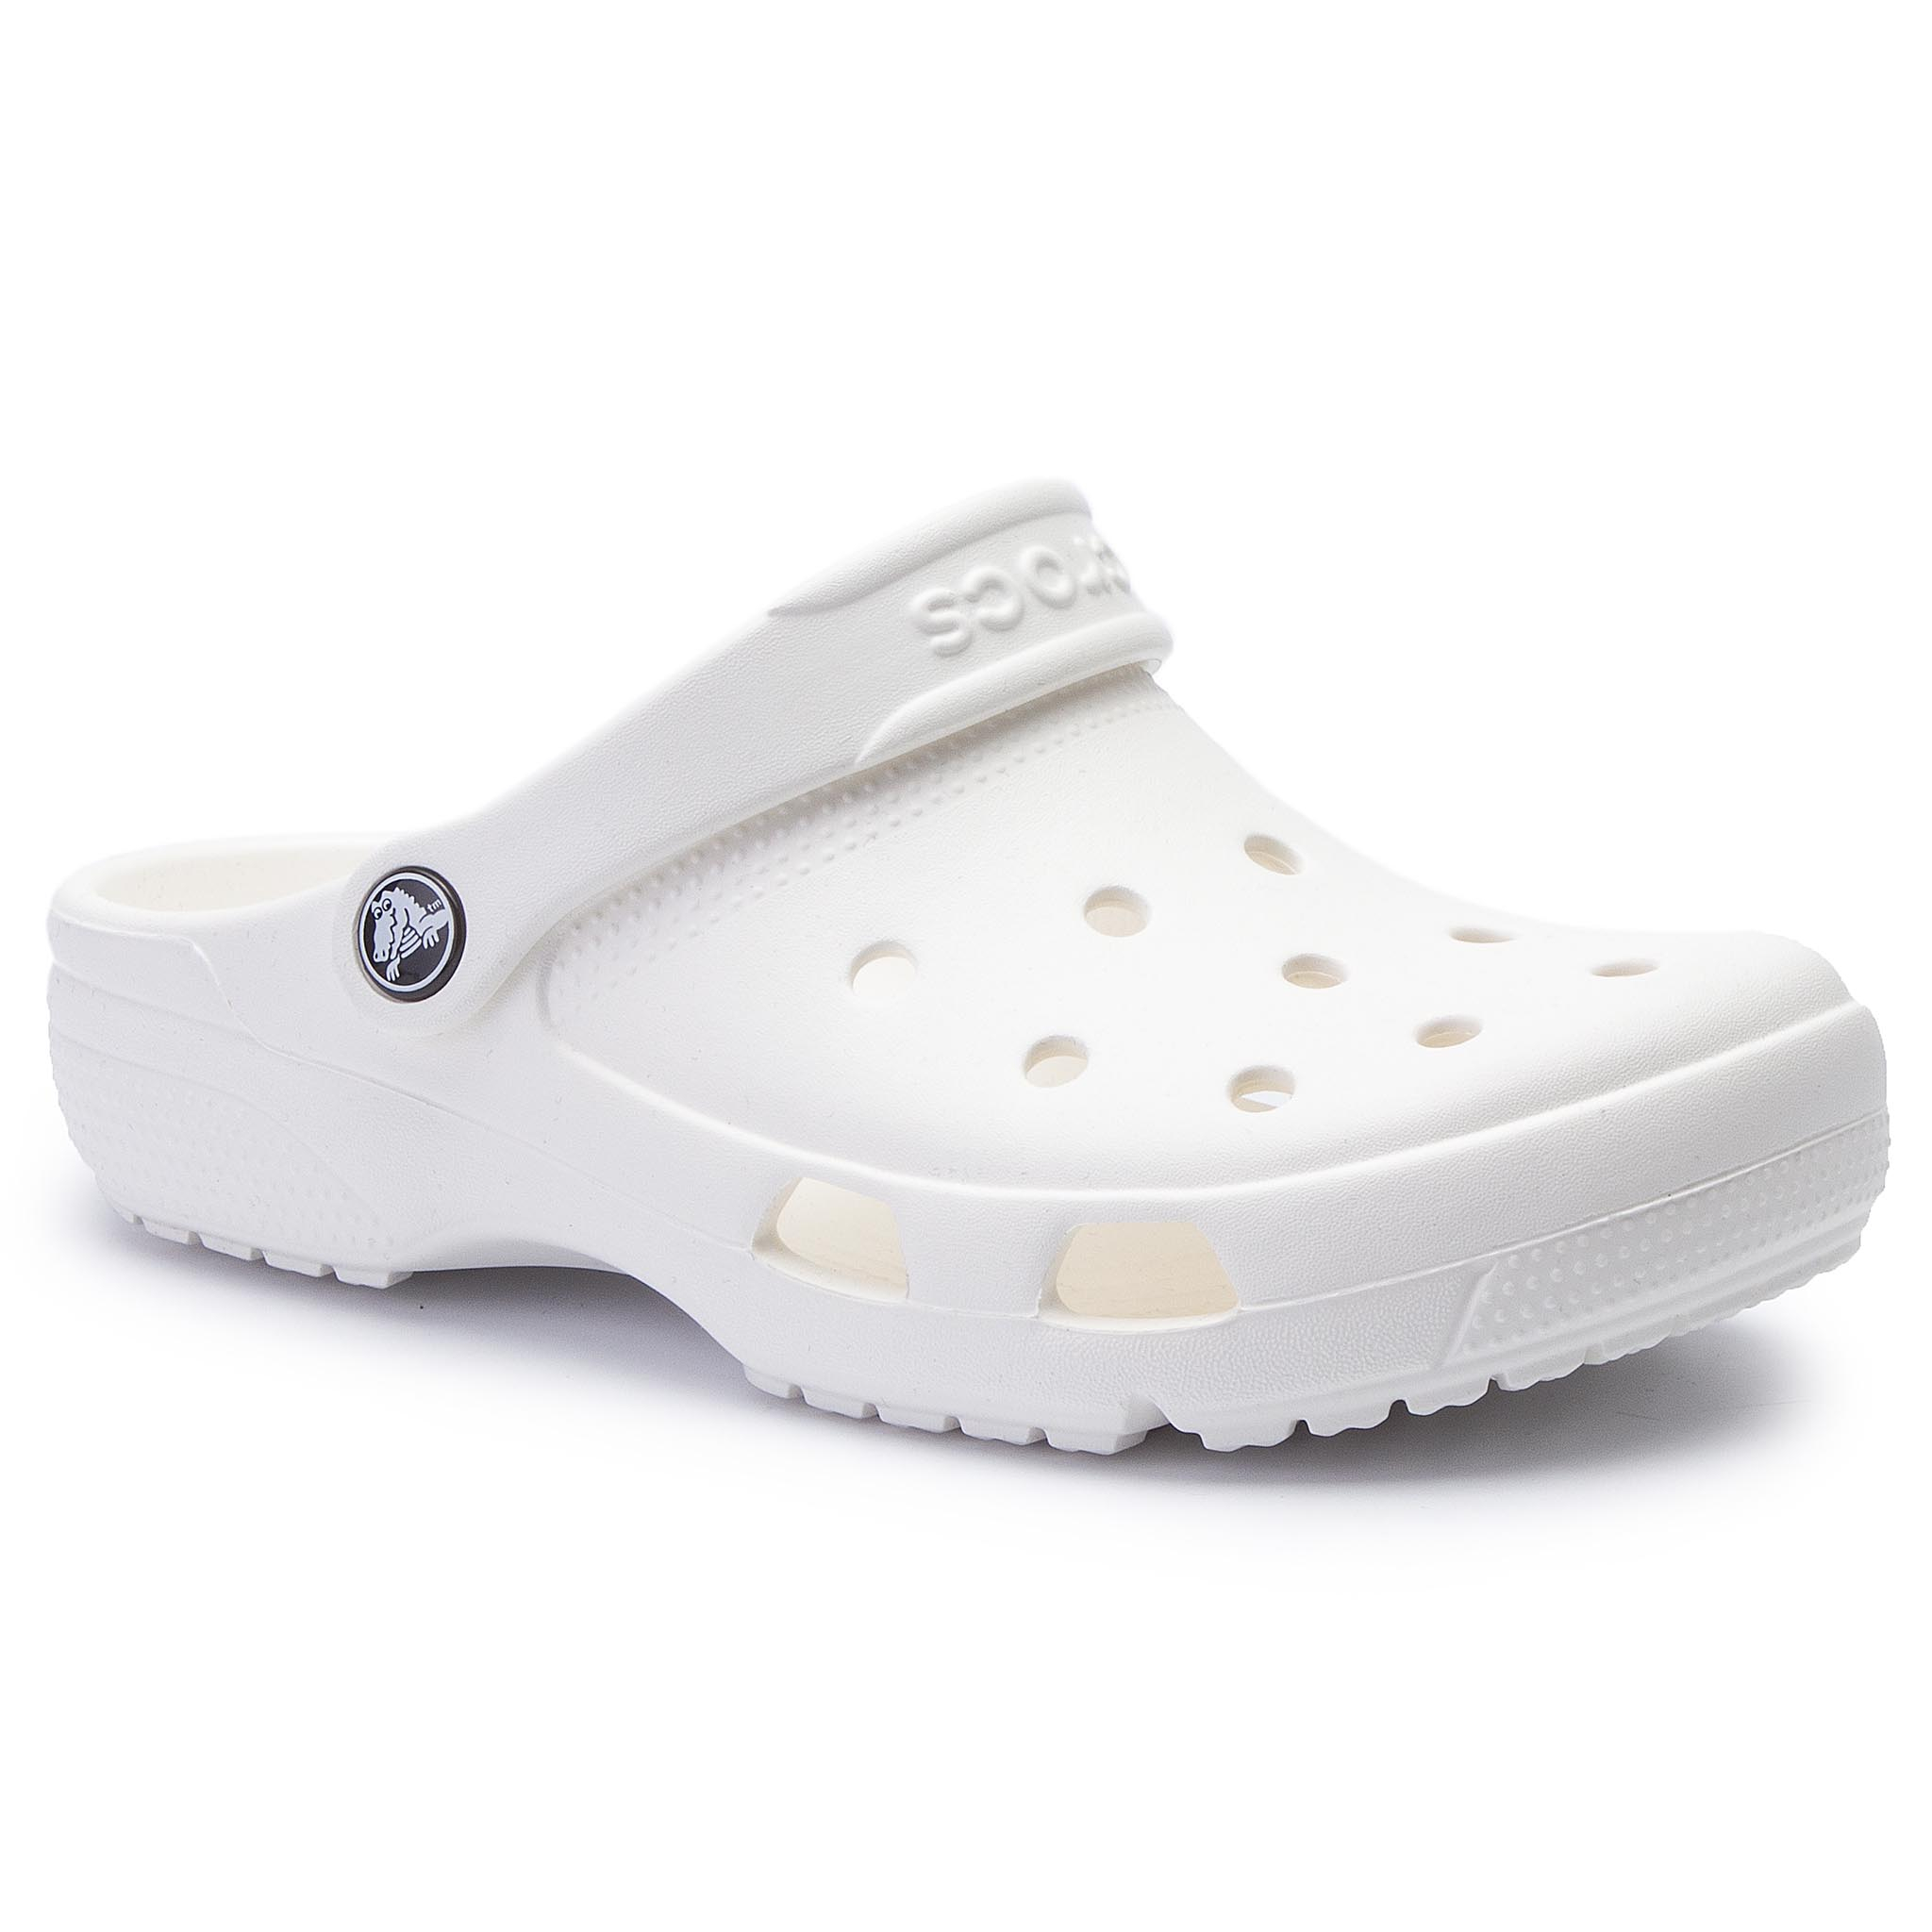 Șlapi CROCS - 204151 White